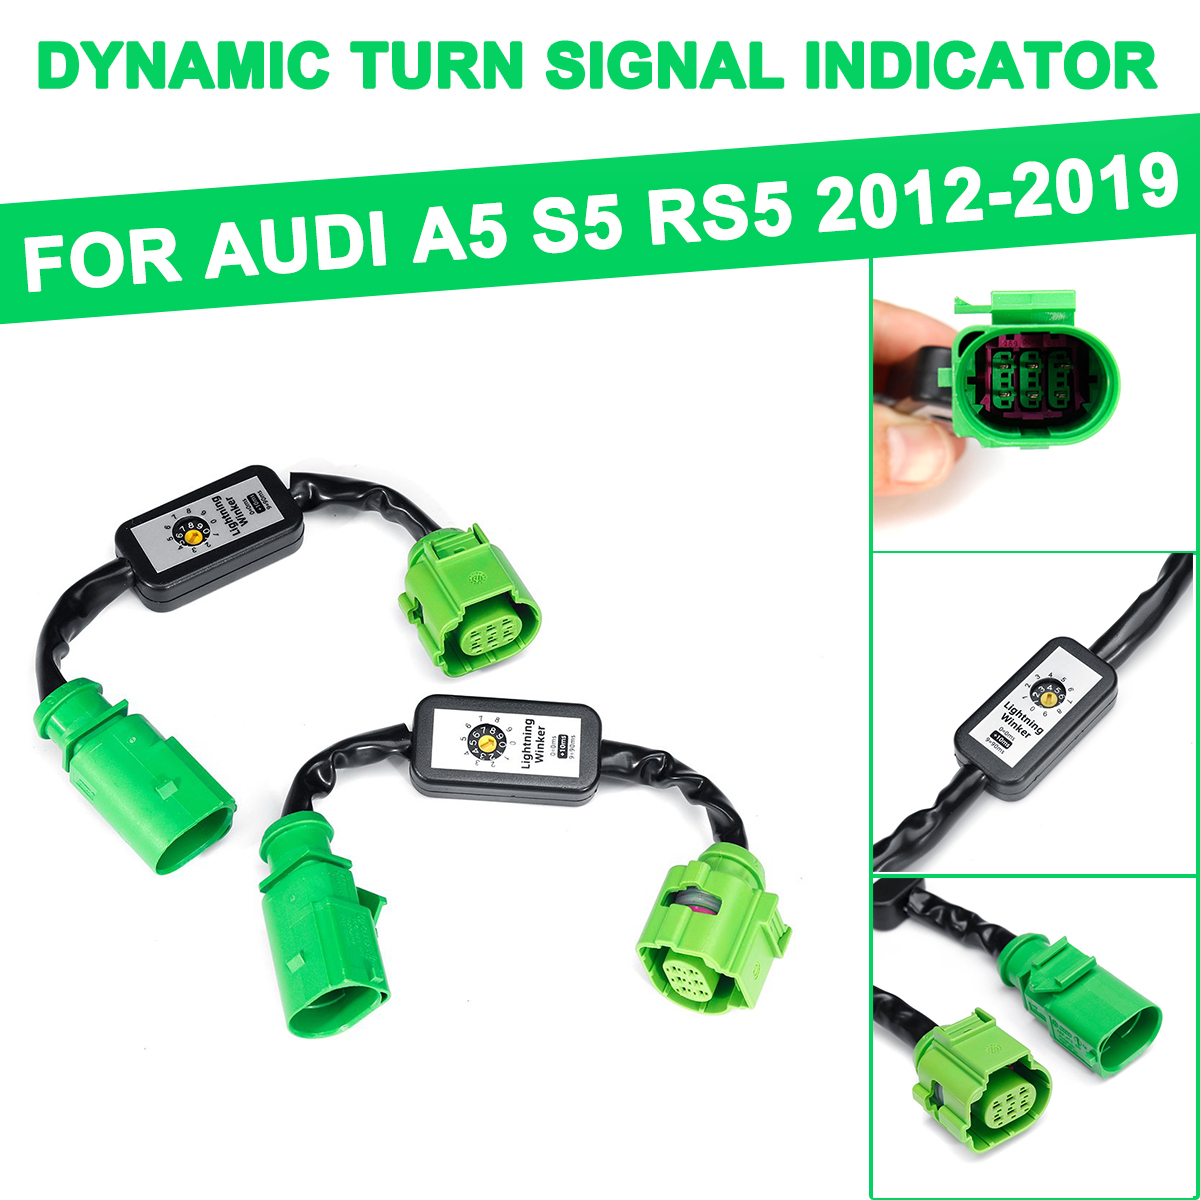 For Audi A5 S5 RS5 2012-2019  2Pcs Dynamic Turn Signal Indicator LED Taillight Module Cable Wire Harness Left & Right Tail Light